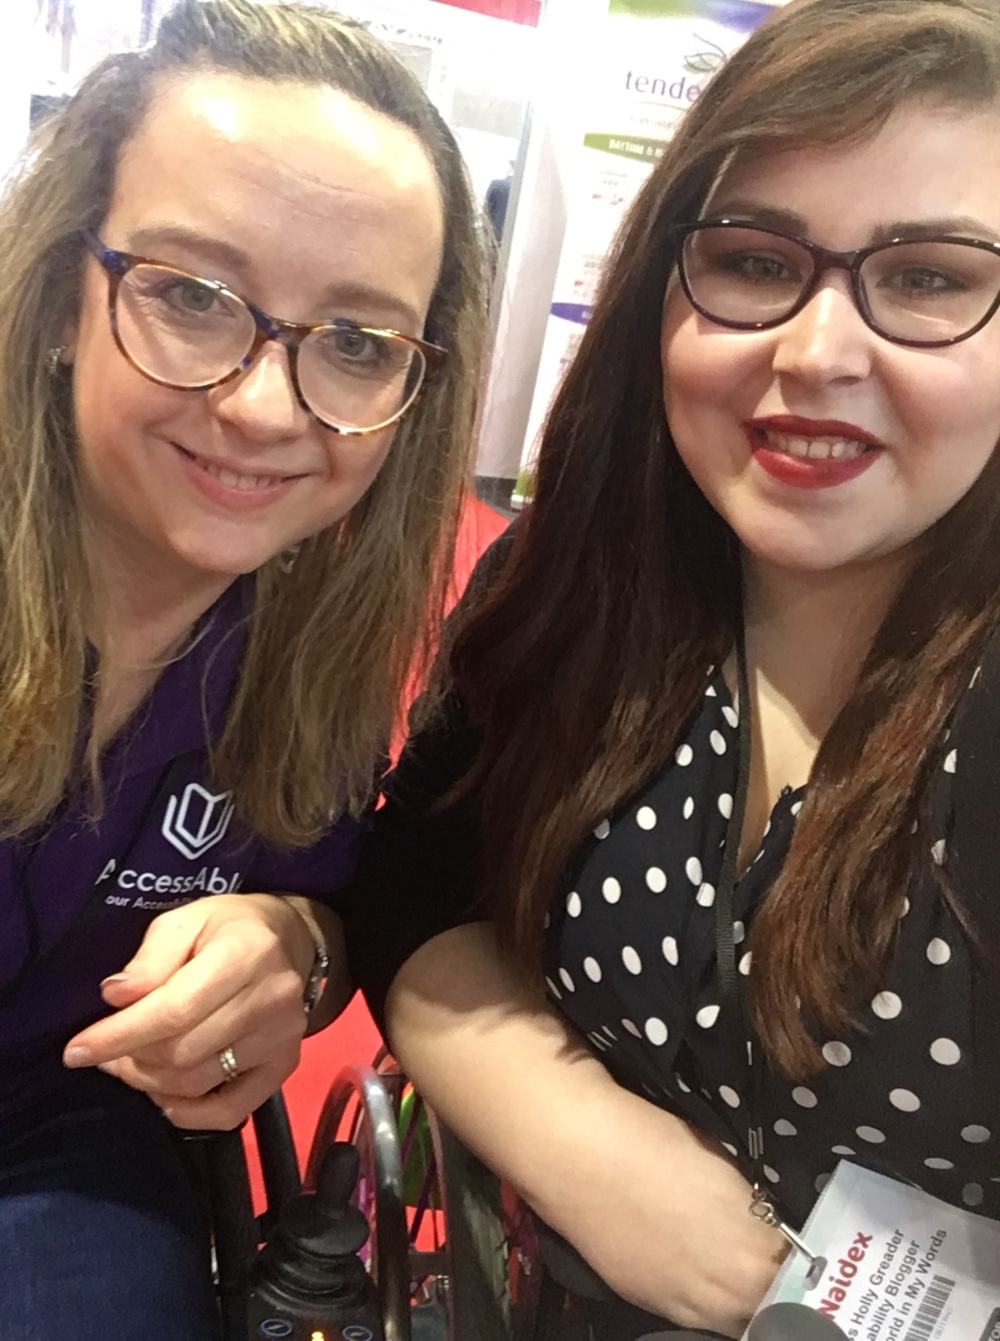 A picture of two women. On the left is Carrie-Ann who has blonde/brown hair with slightly rounded glasses on and a purple t-shirt. Carrie-Ann is leaning on the arm rest of her wheelchair she is sat in. On the right is Holly with long brown hair, purple slightly rounded glasses and red lipstick. Holly is wearing a dark blue blouse with white Polka dots on. She is also leaning on the arm of the wheelchair she is sat in.